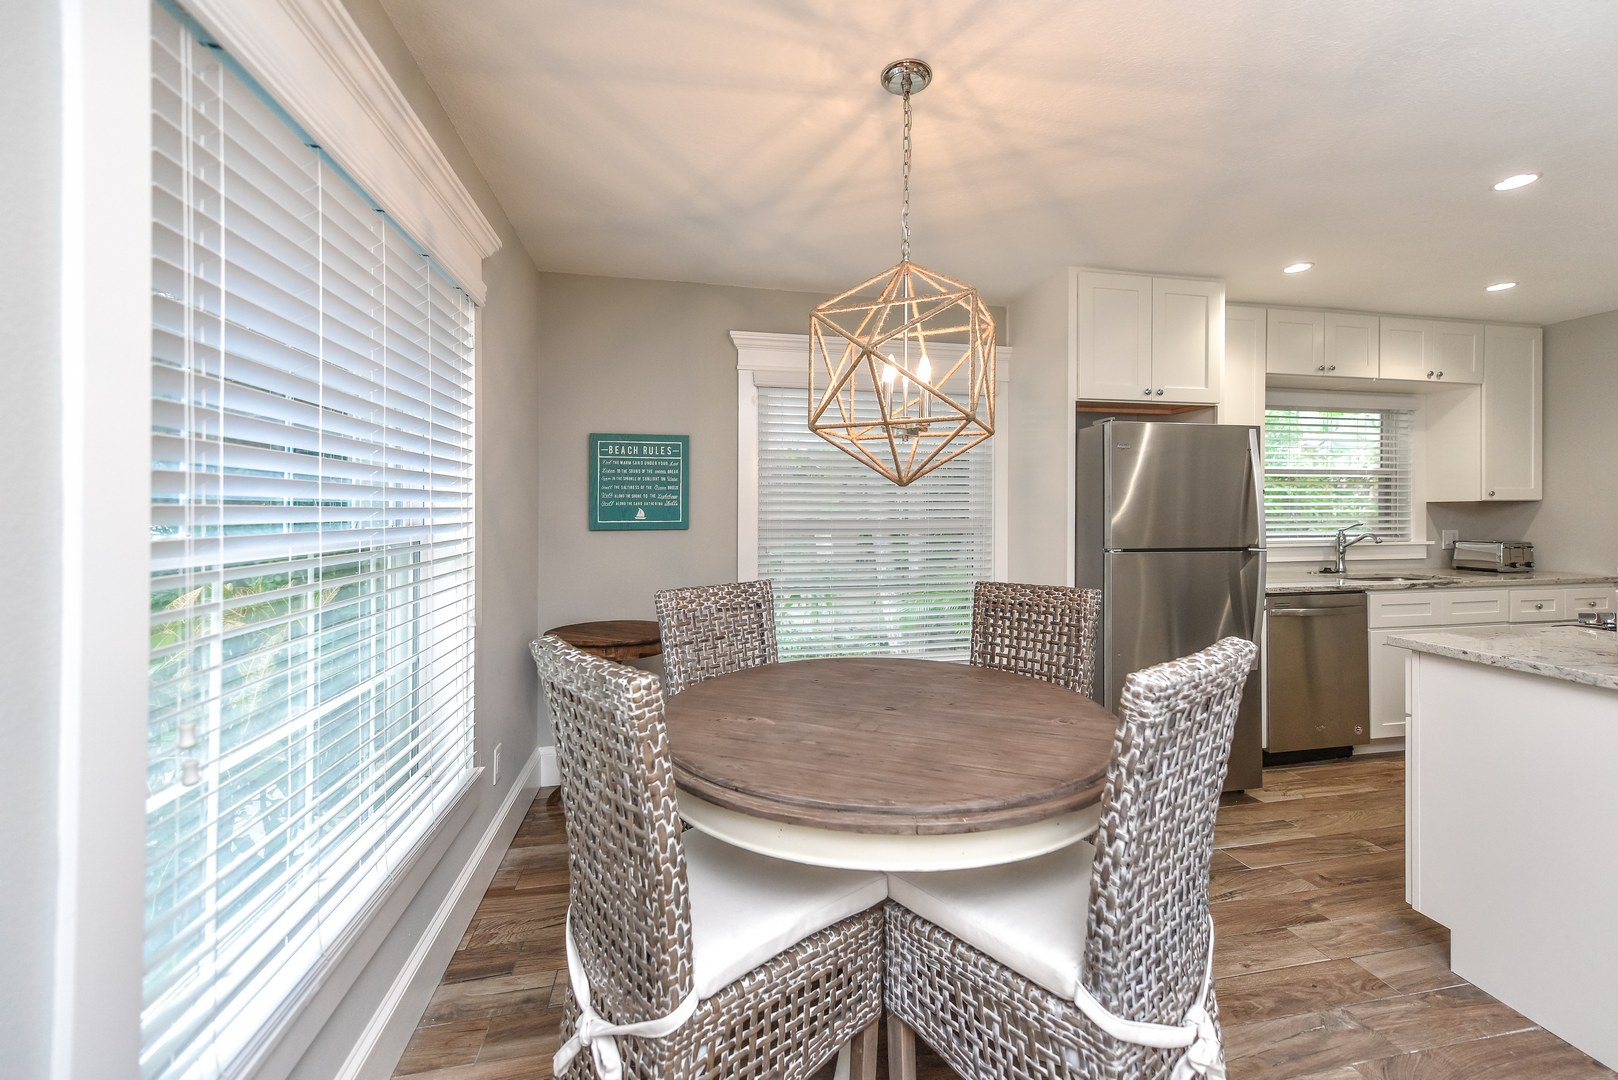 Dine in Kitchen is a Great Feature - TV visible from Dining